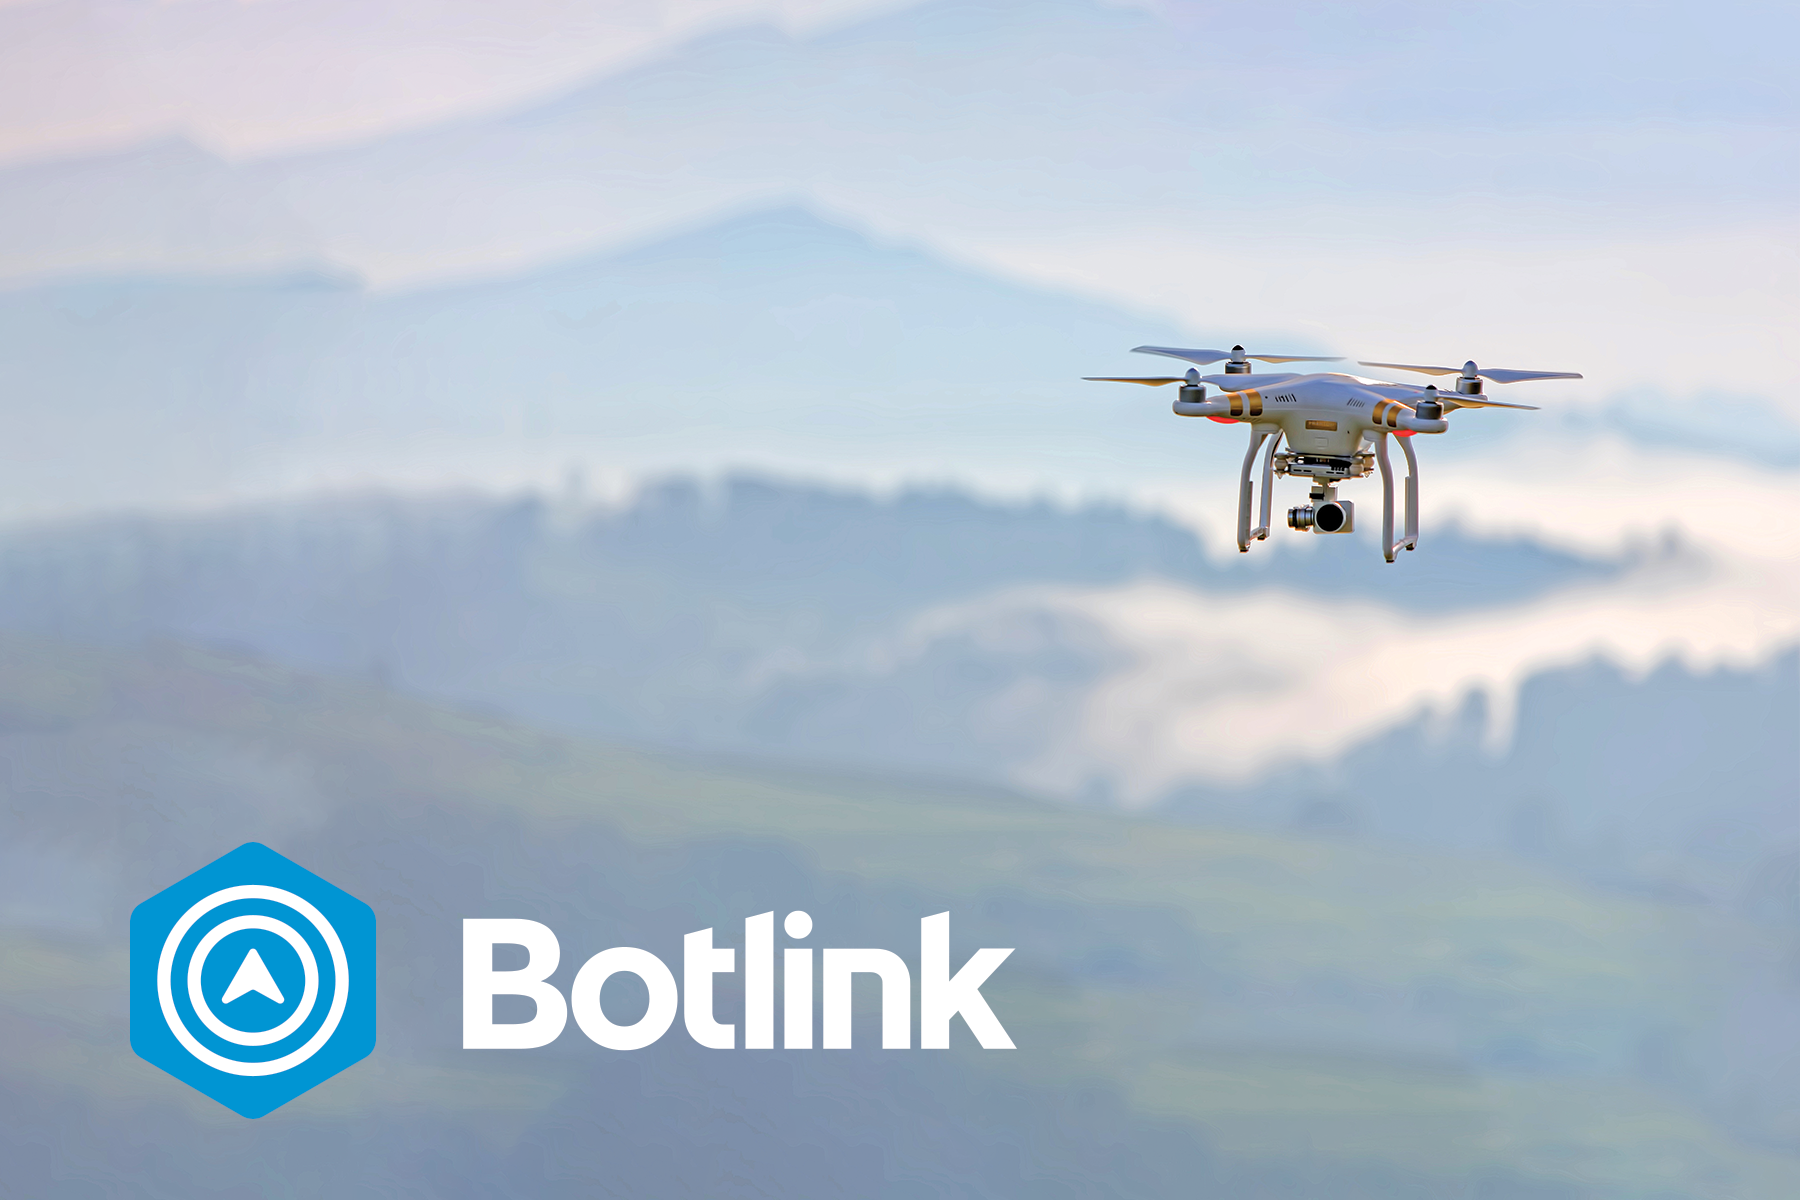 Botlink Logo and Drone.png